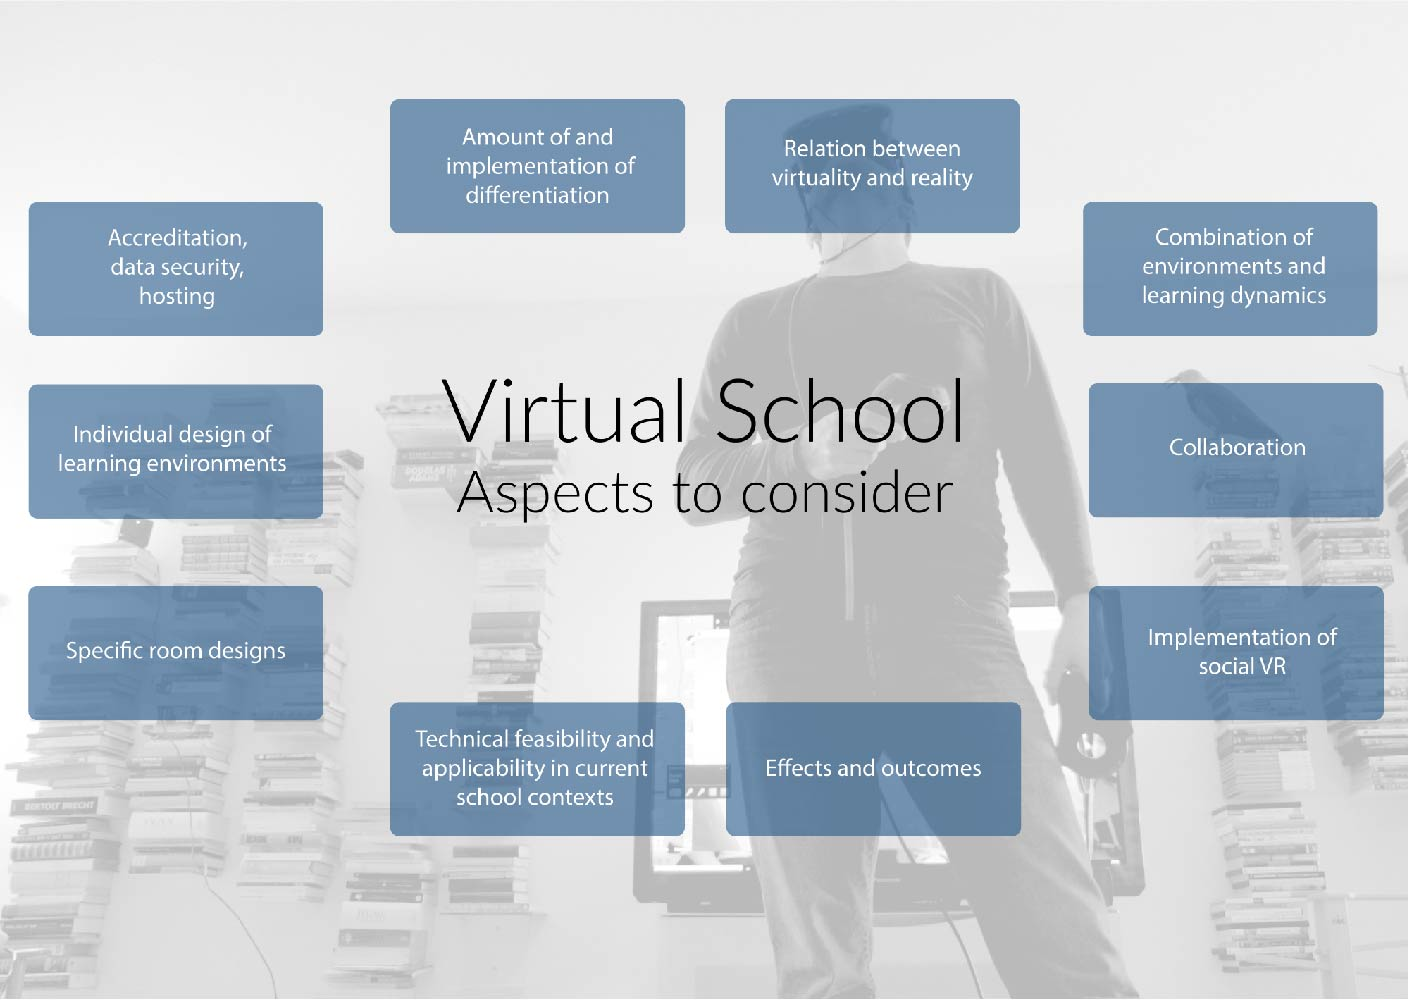 Virtual School Aspects to consider; Institut für digitales Lernen